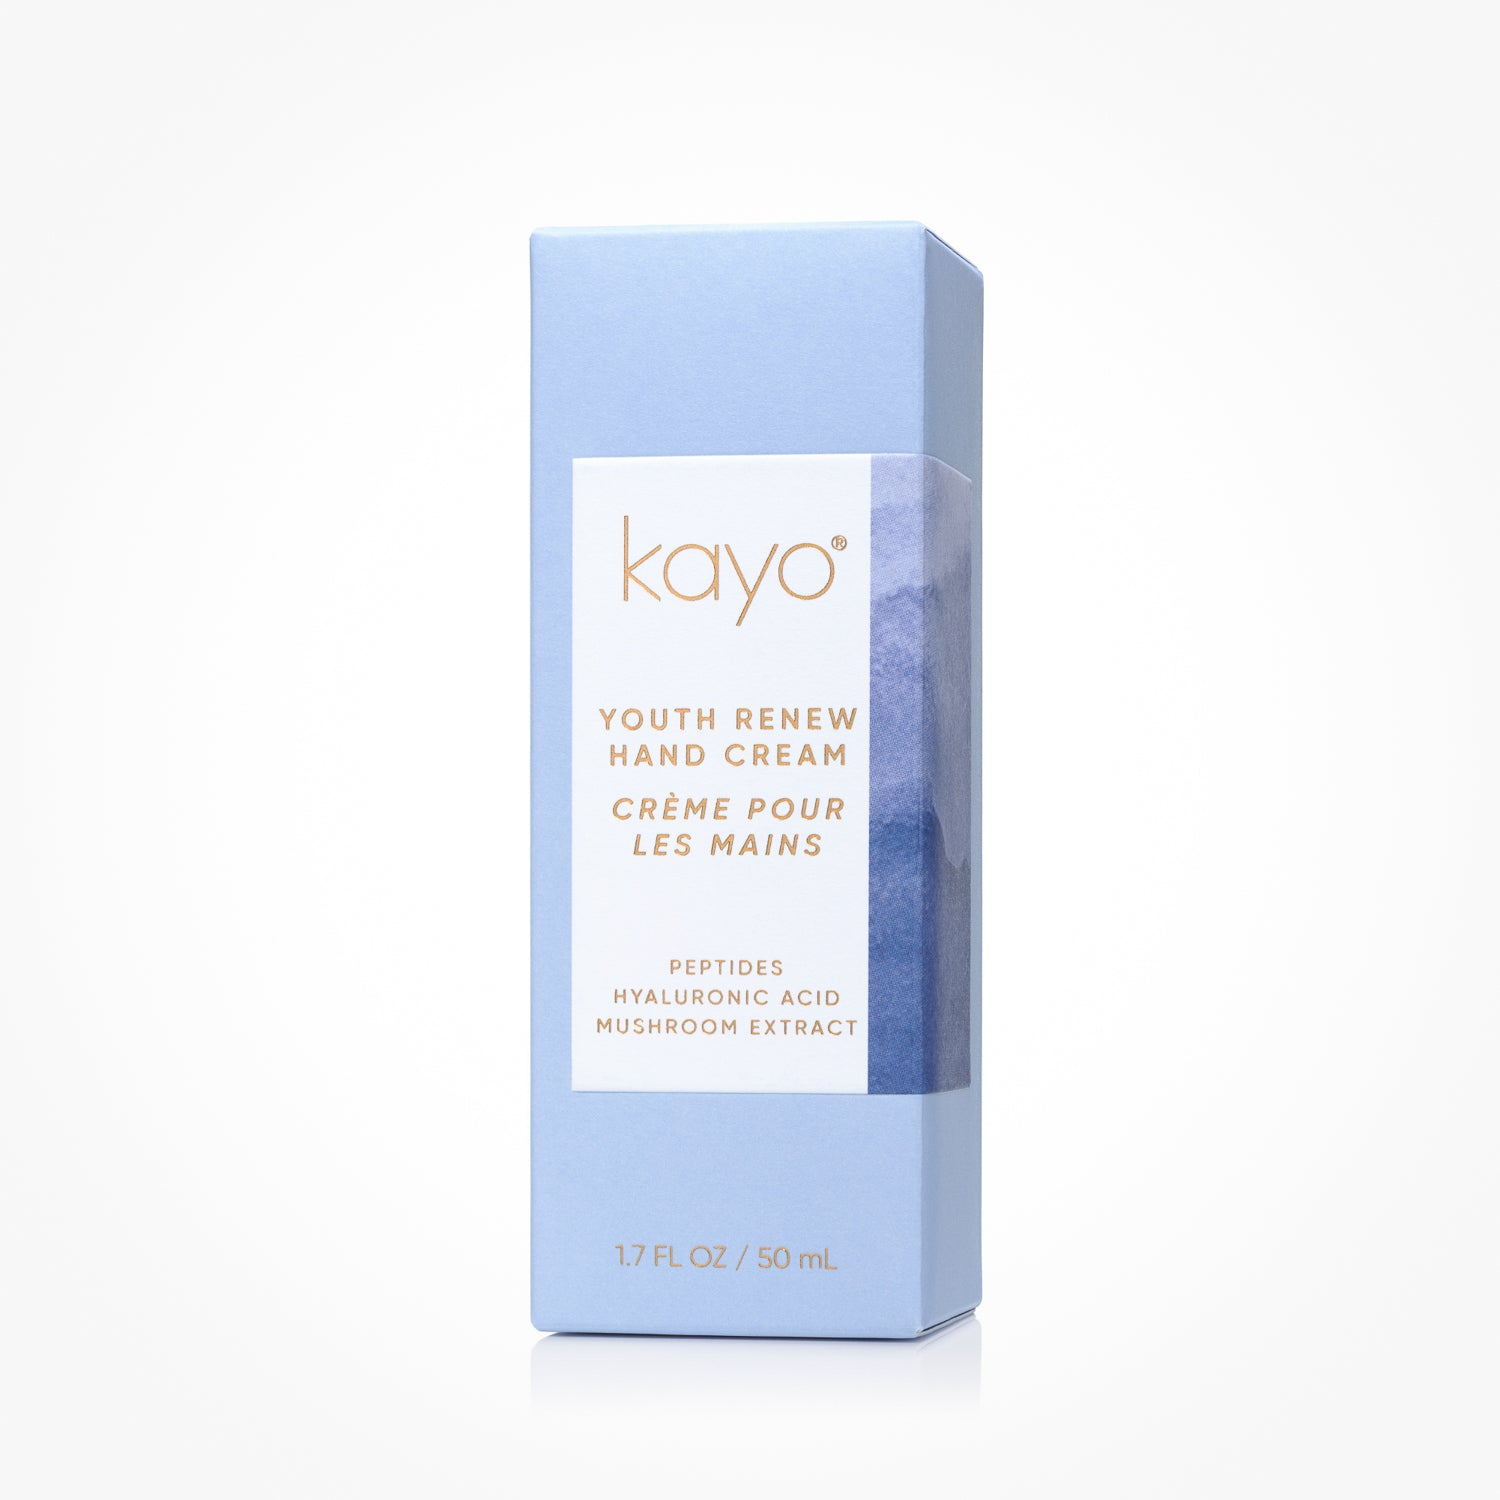 YOUTH RENEW HAND CREAM